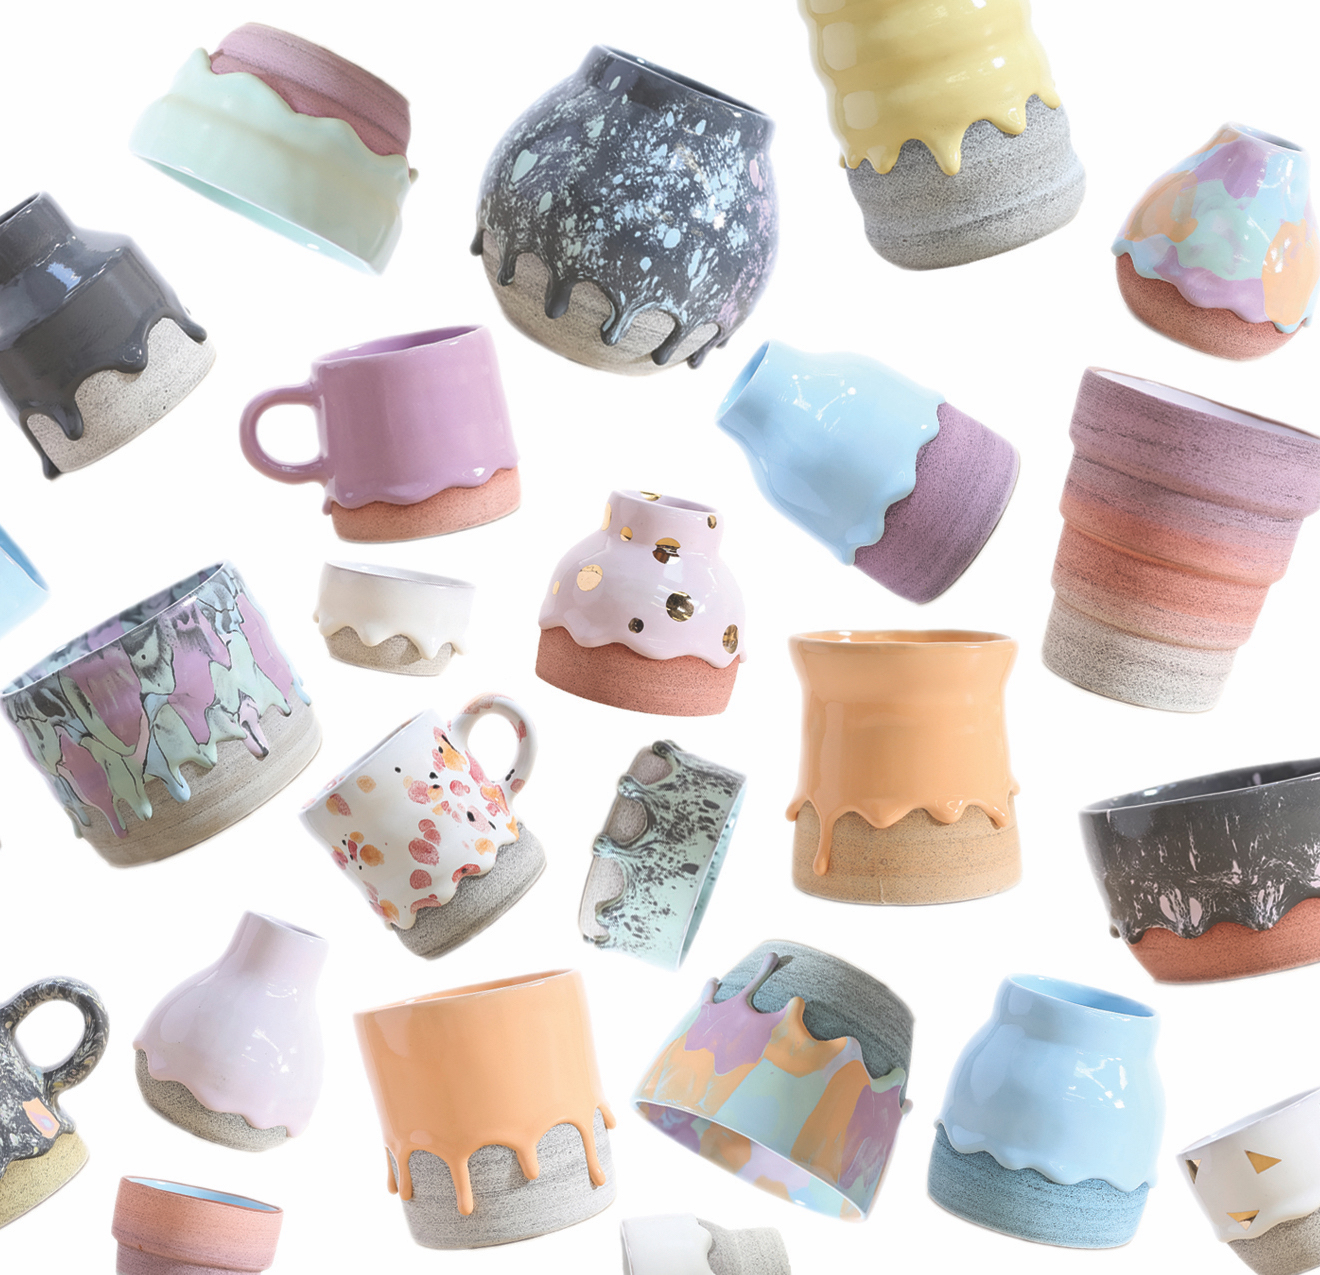 How Brian Giniewski Runs His Whimsical Pottery Business